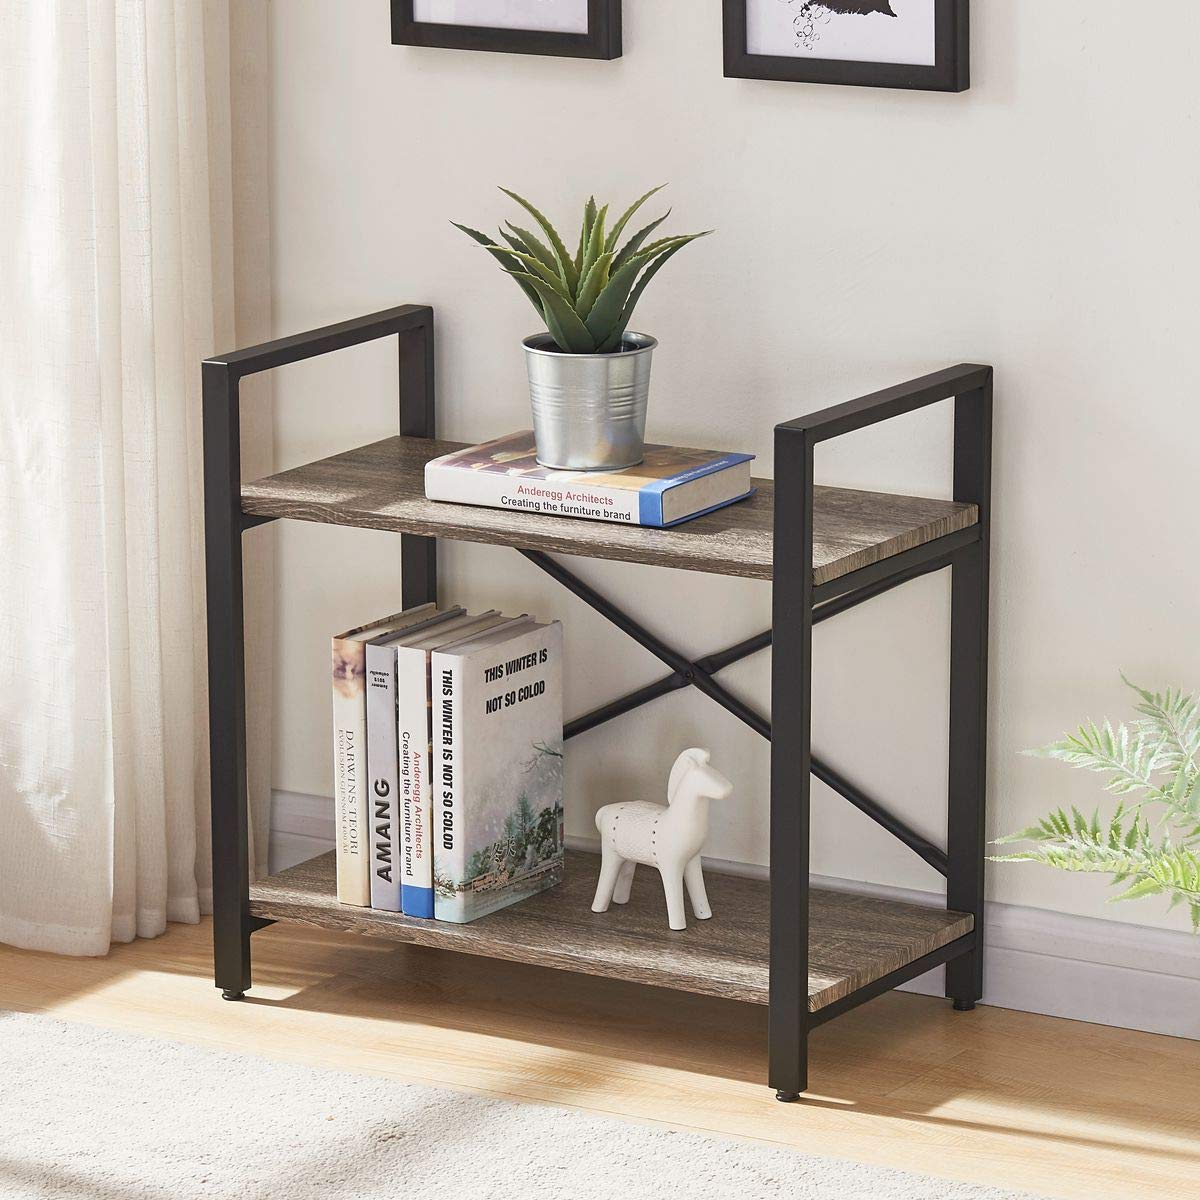 BON AUGURE Small Bookshelf for Small Space, 2 Shelf Low Metal Bookcase, Industrial Shelving Unit with Short Shelves, Dark Oak